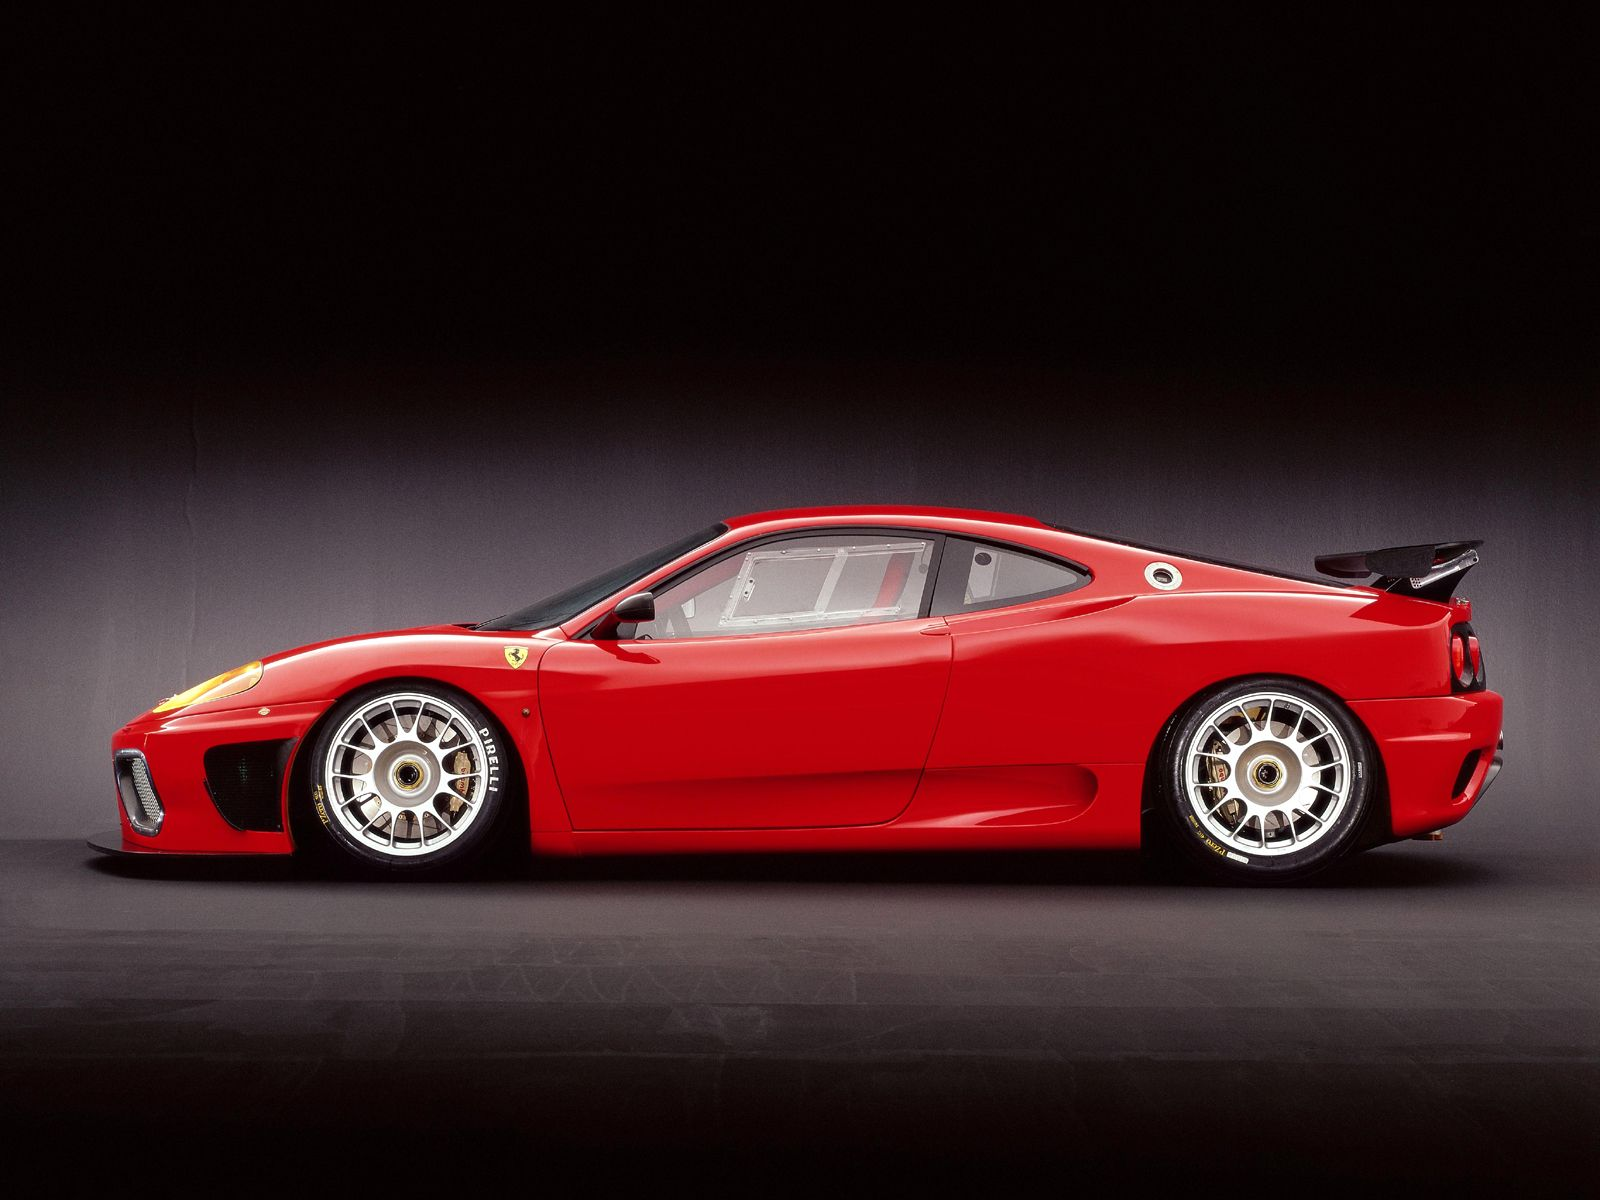 Ferrari 360 Modena Wallpaper And Background Image